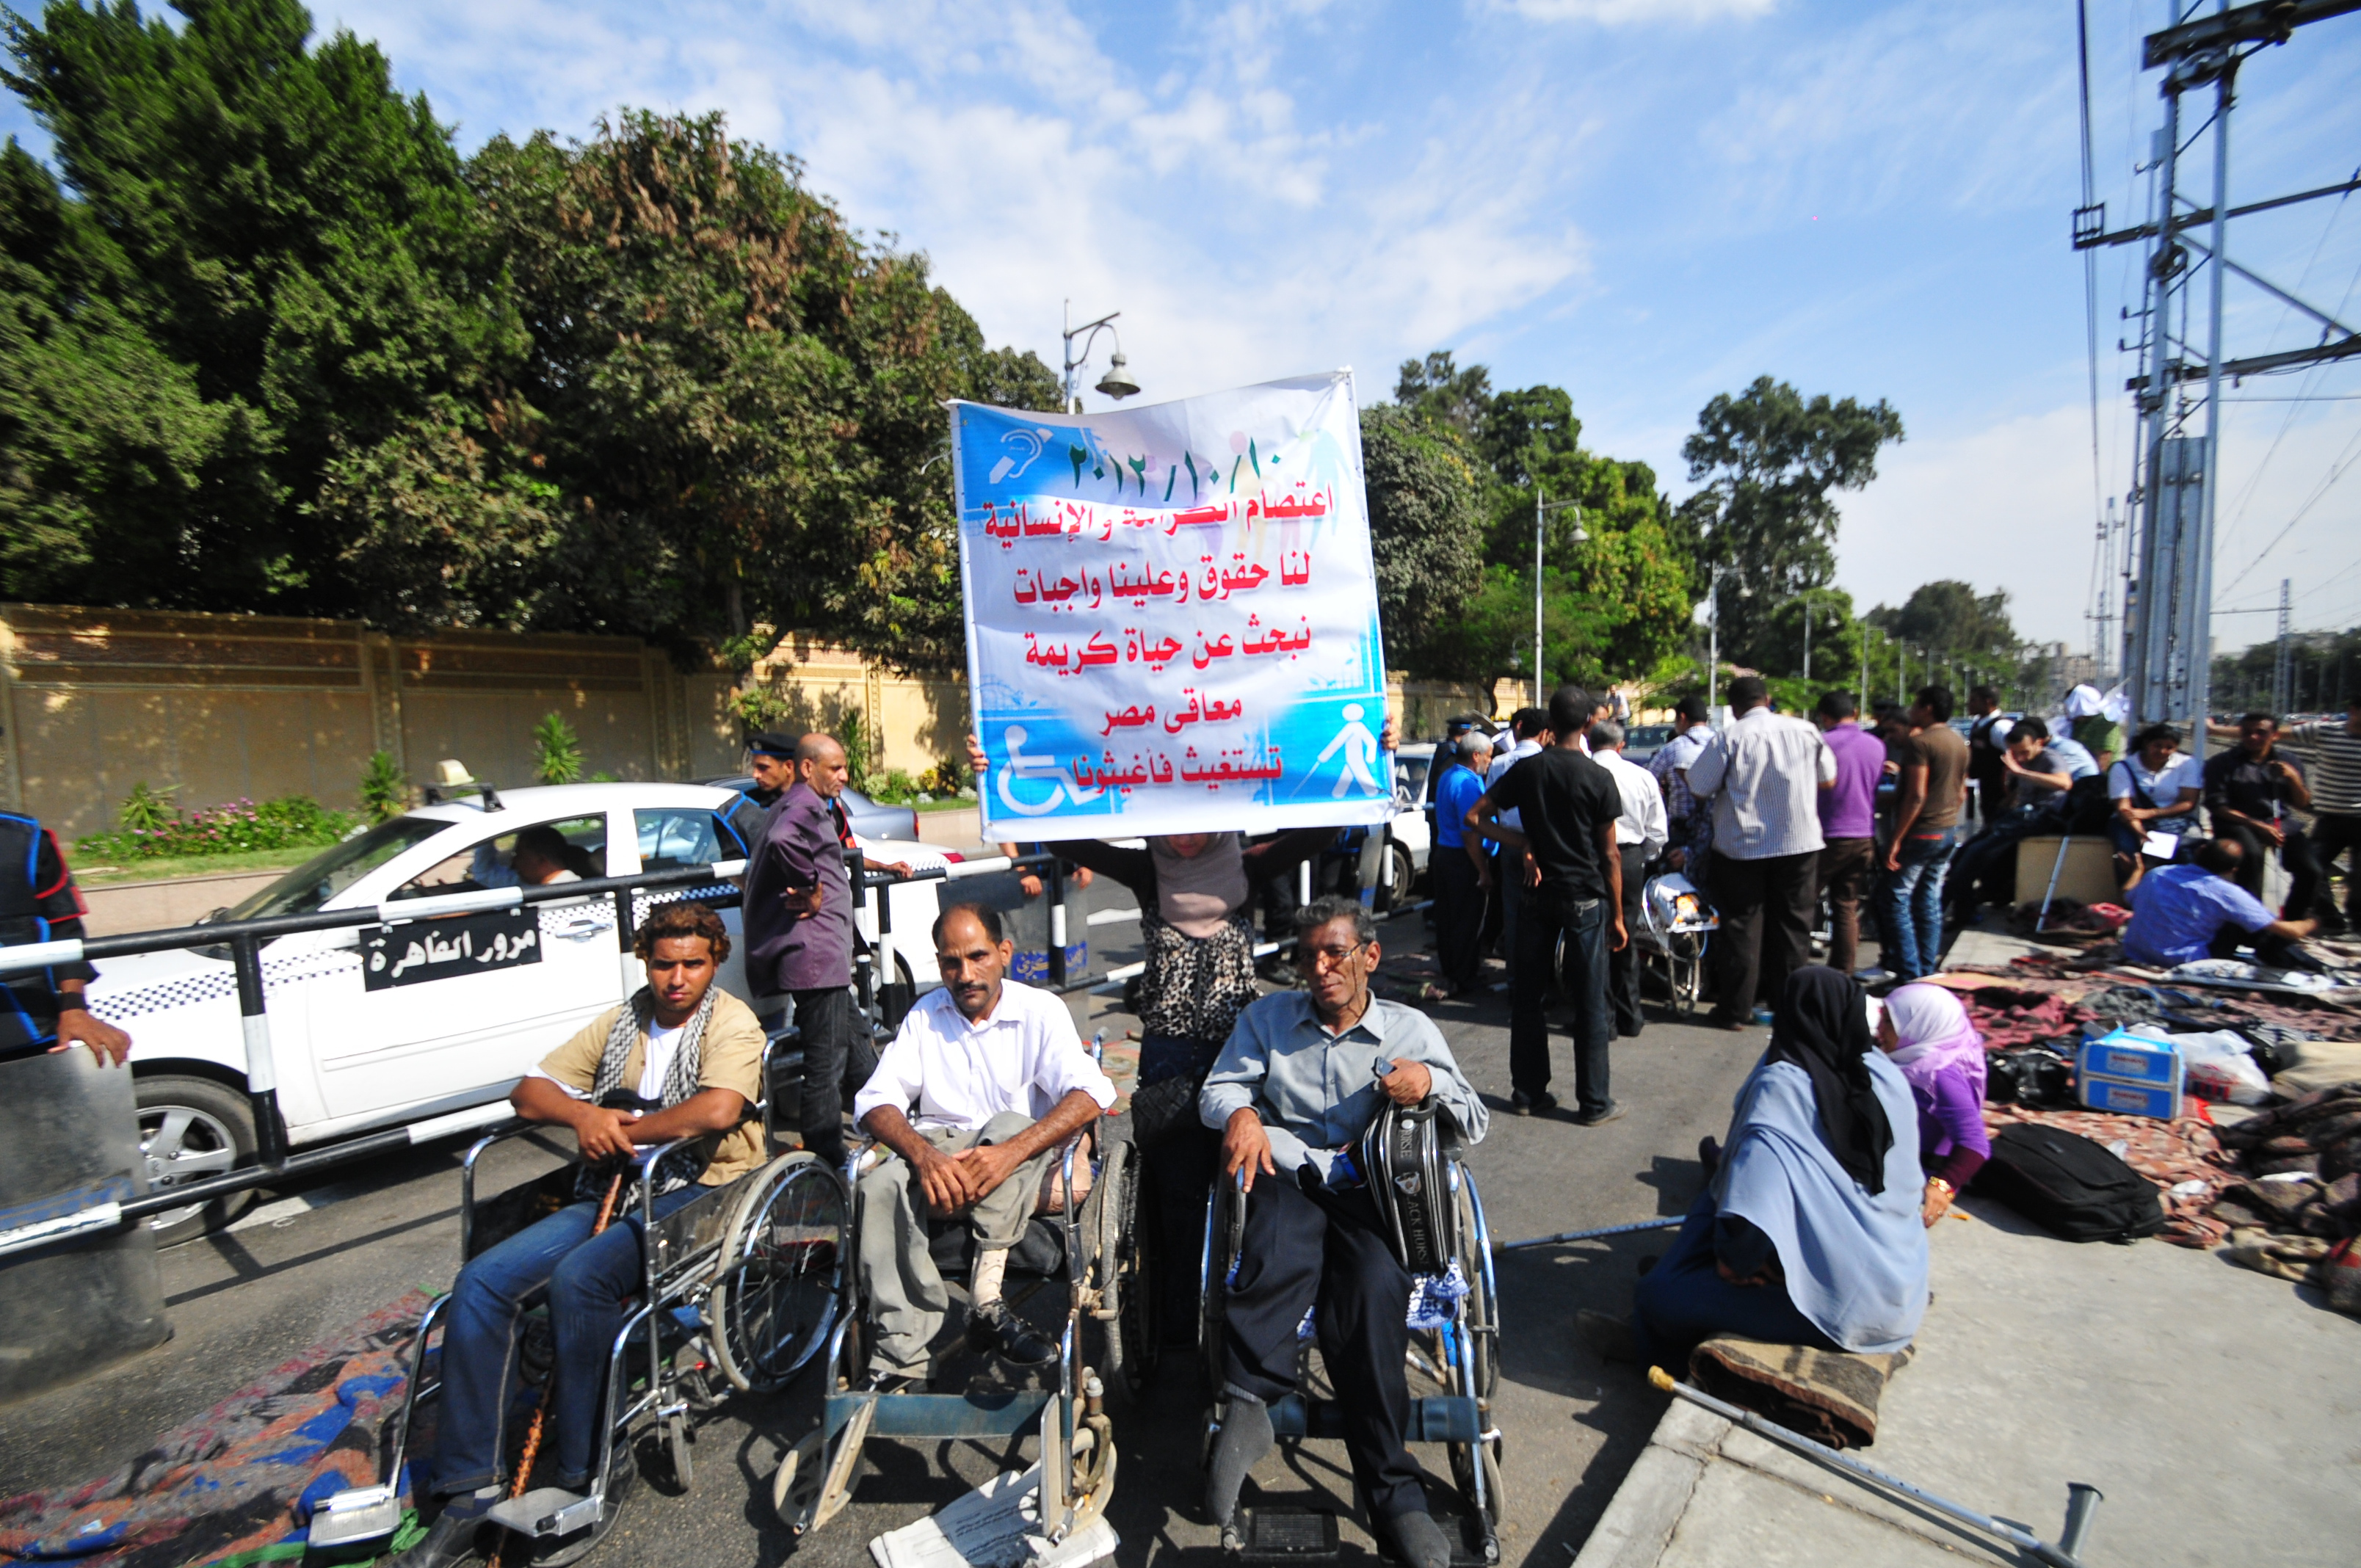 Disabled persons protesting outside the presidential palace in October, 2012 demanding better rights and representation    (Photo by Hassan Ibrahim)